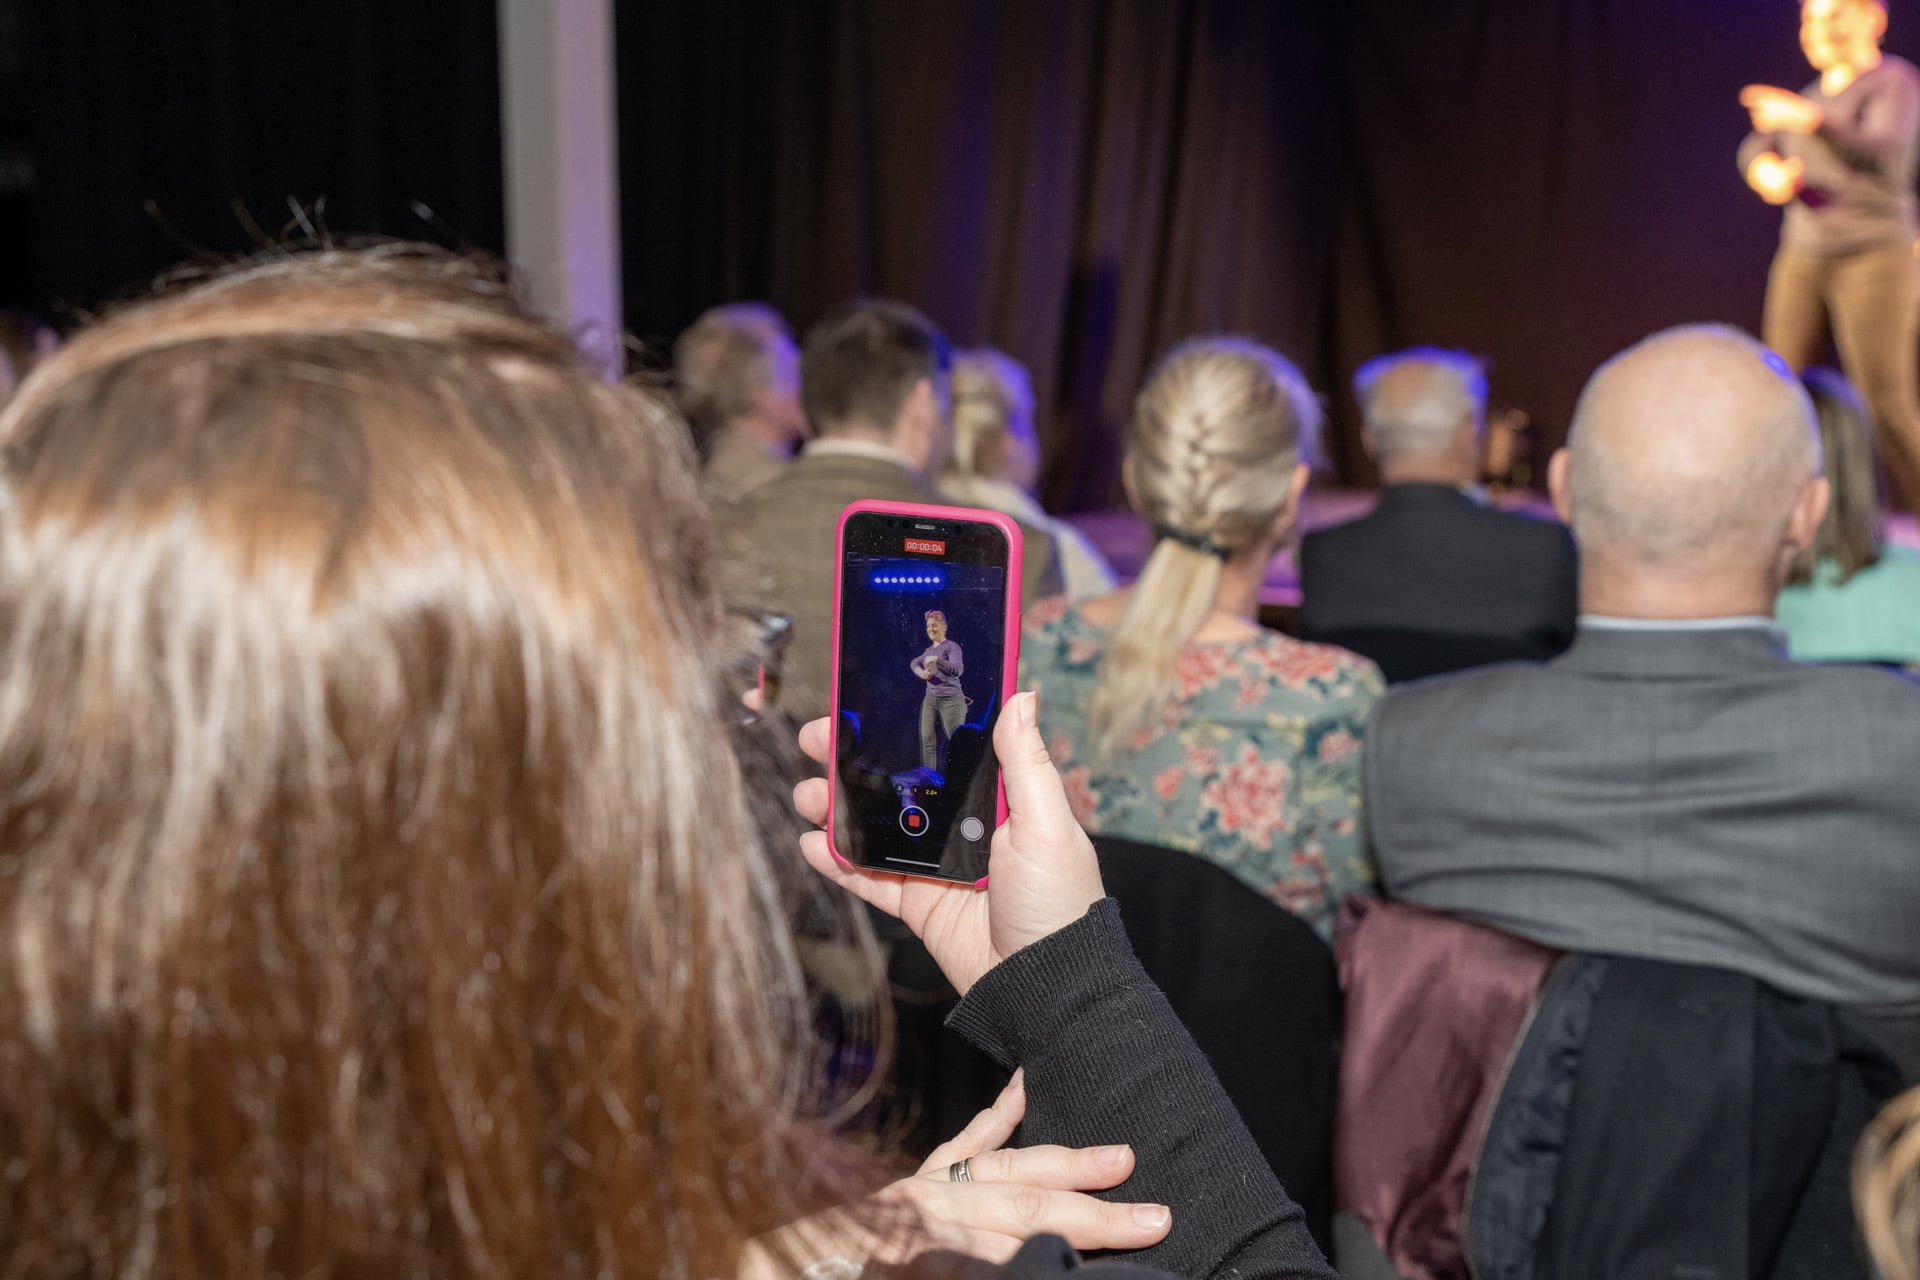 Lisa Bean caught on camera at book launch